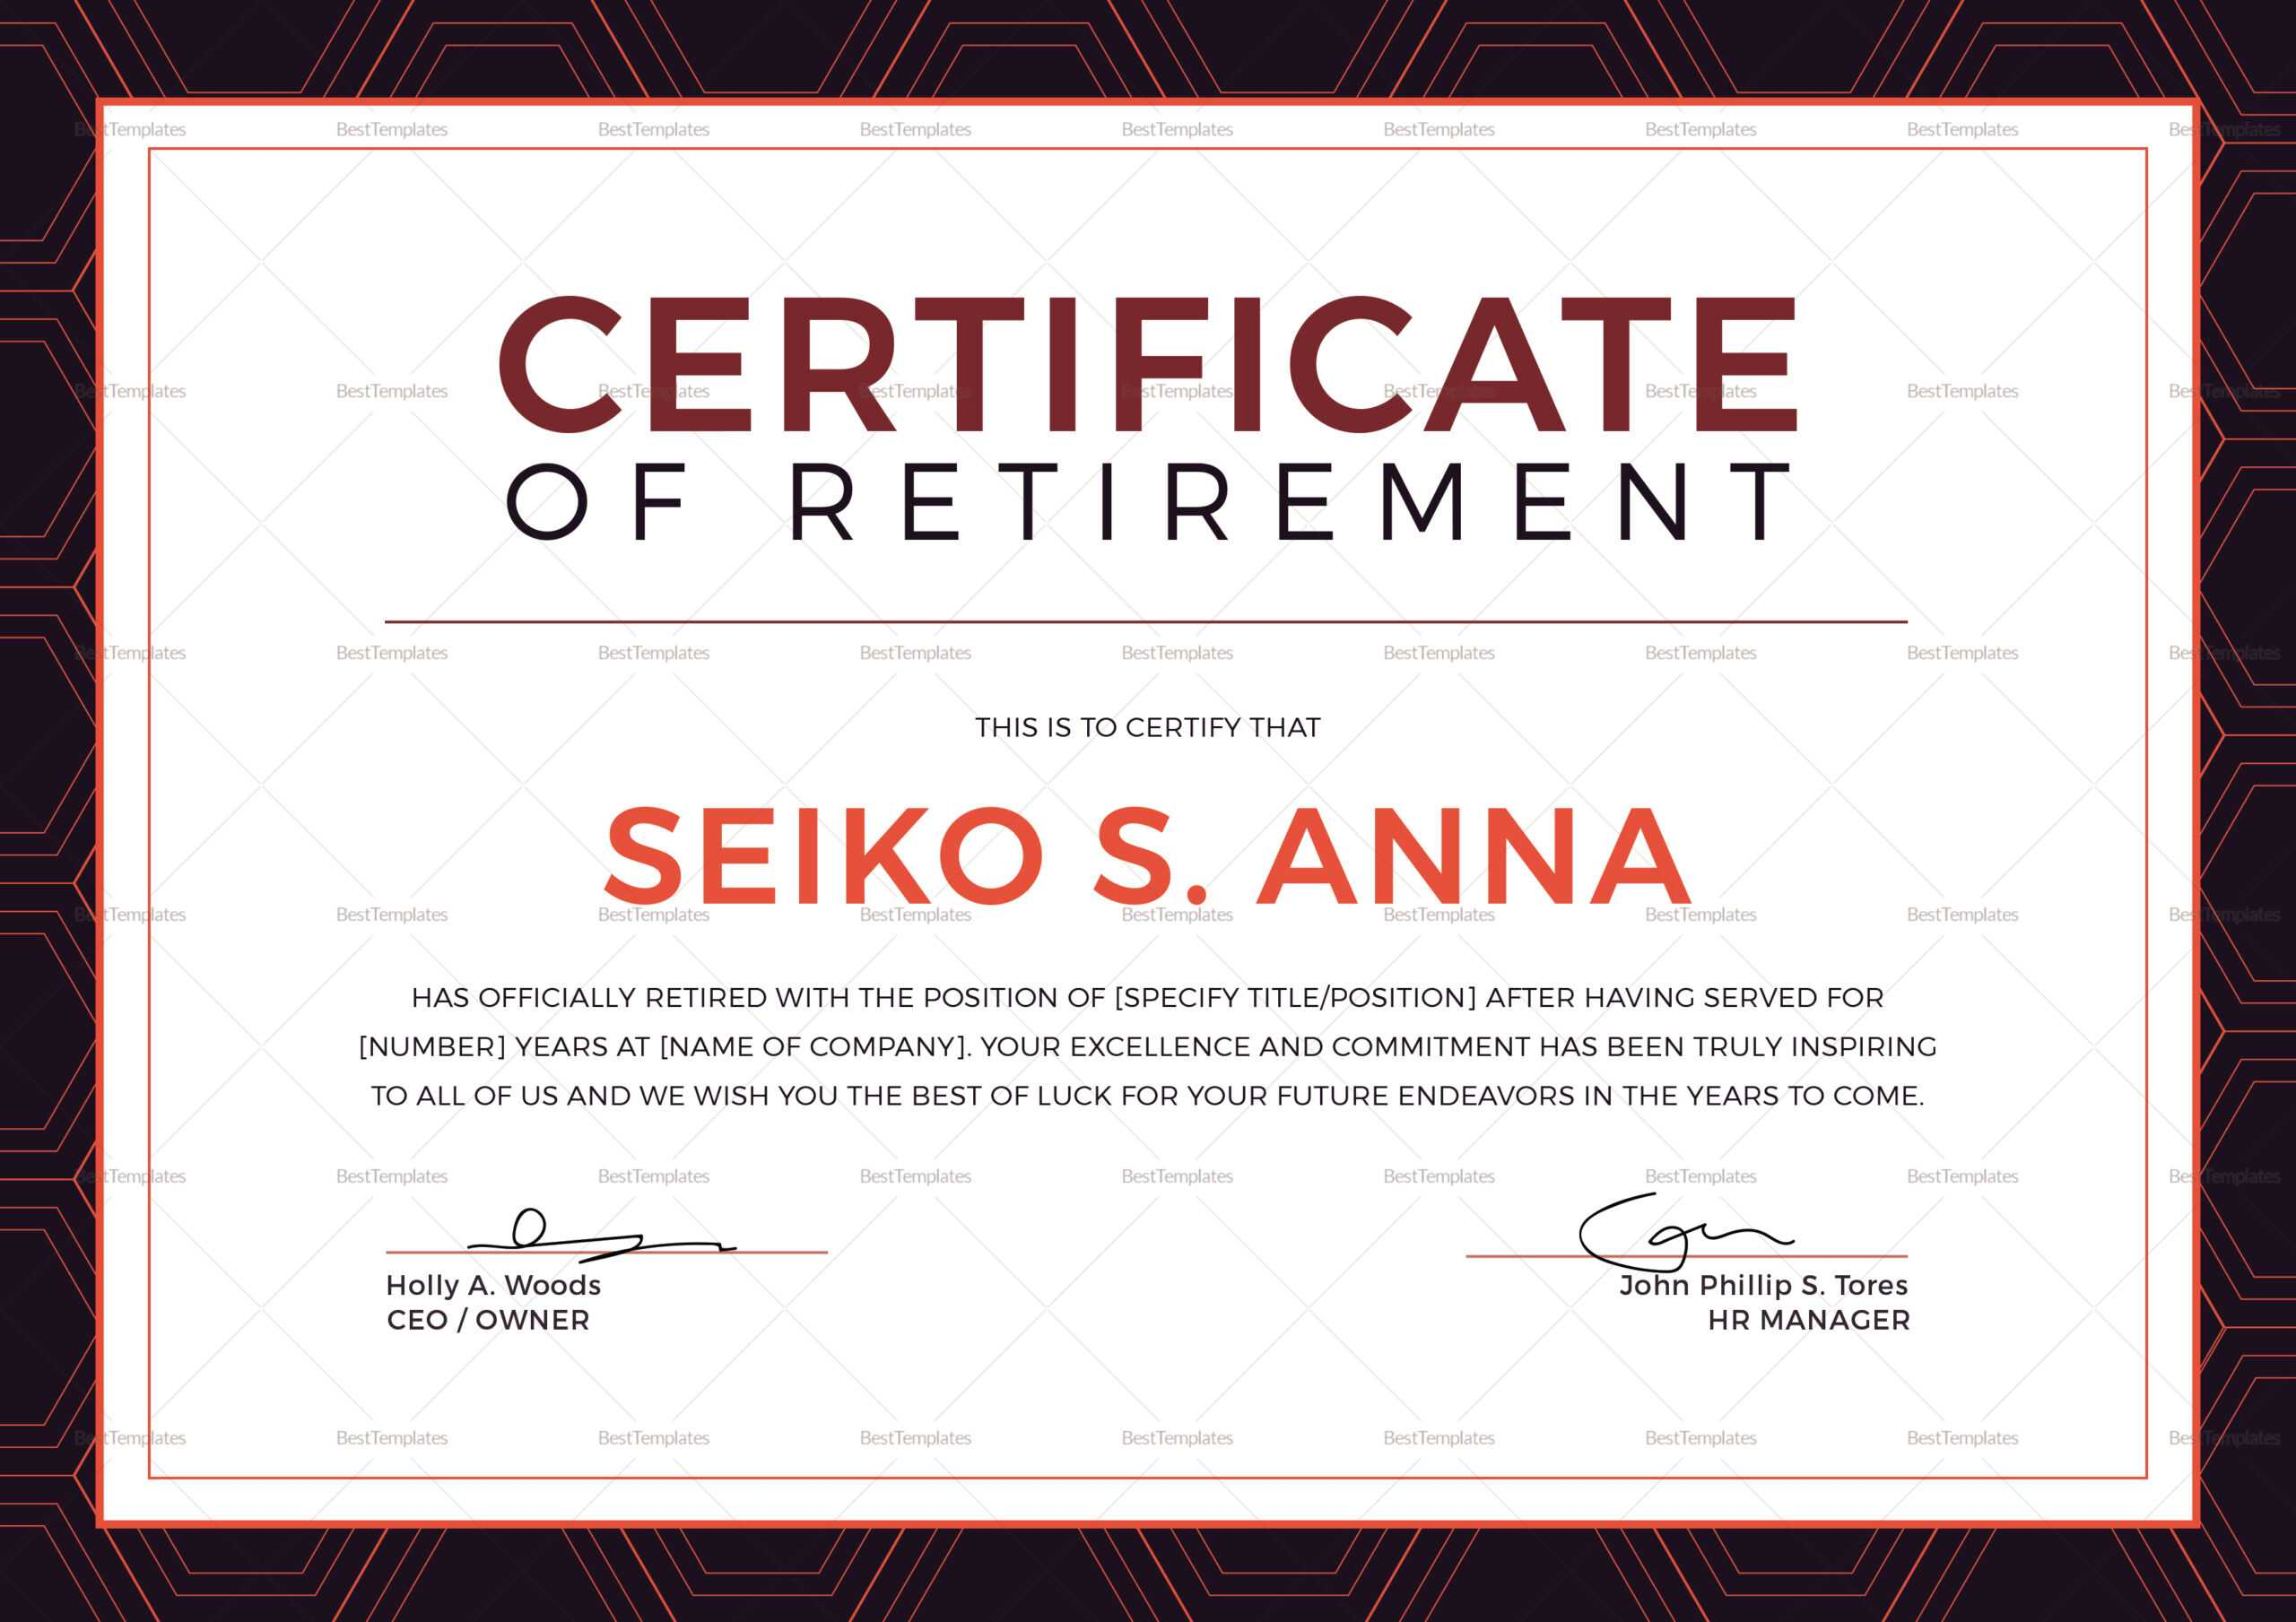 Retirement Certificate Template Regarding Retirement Certificate Template